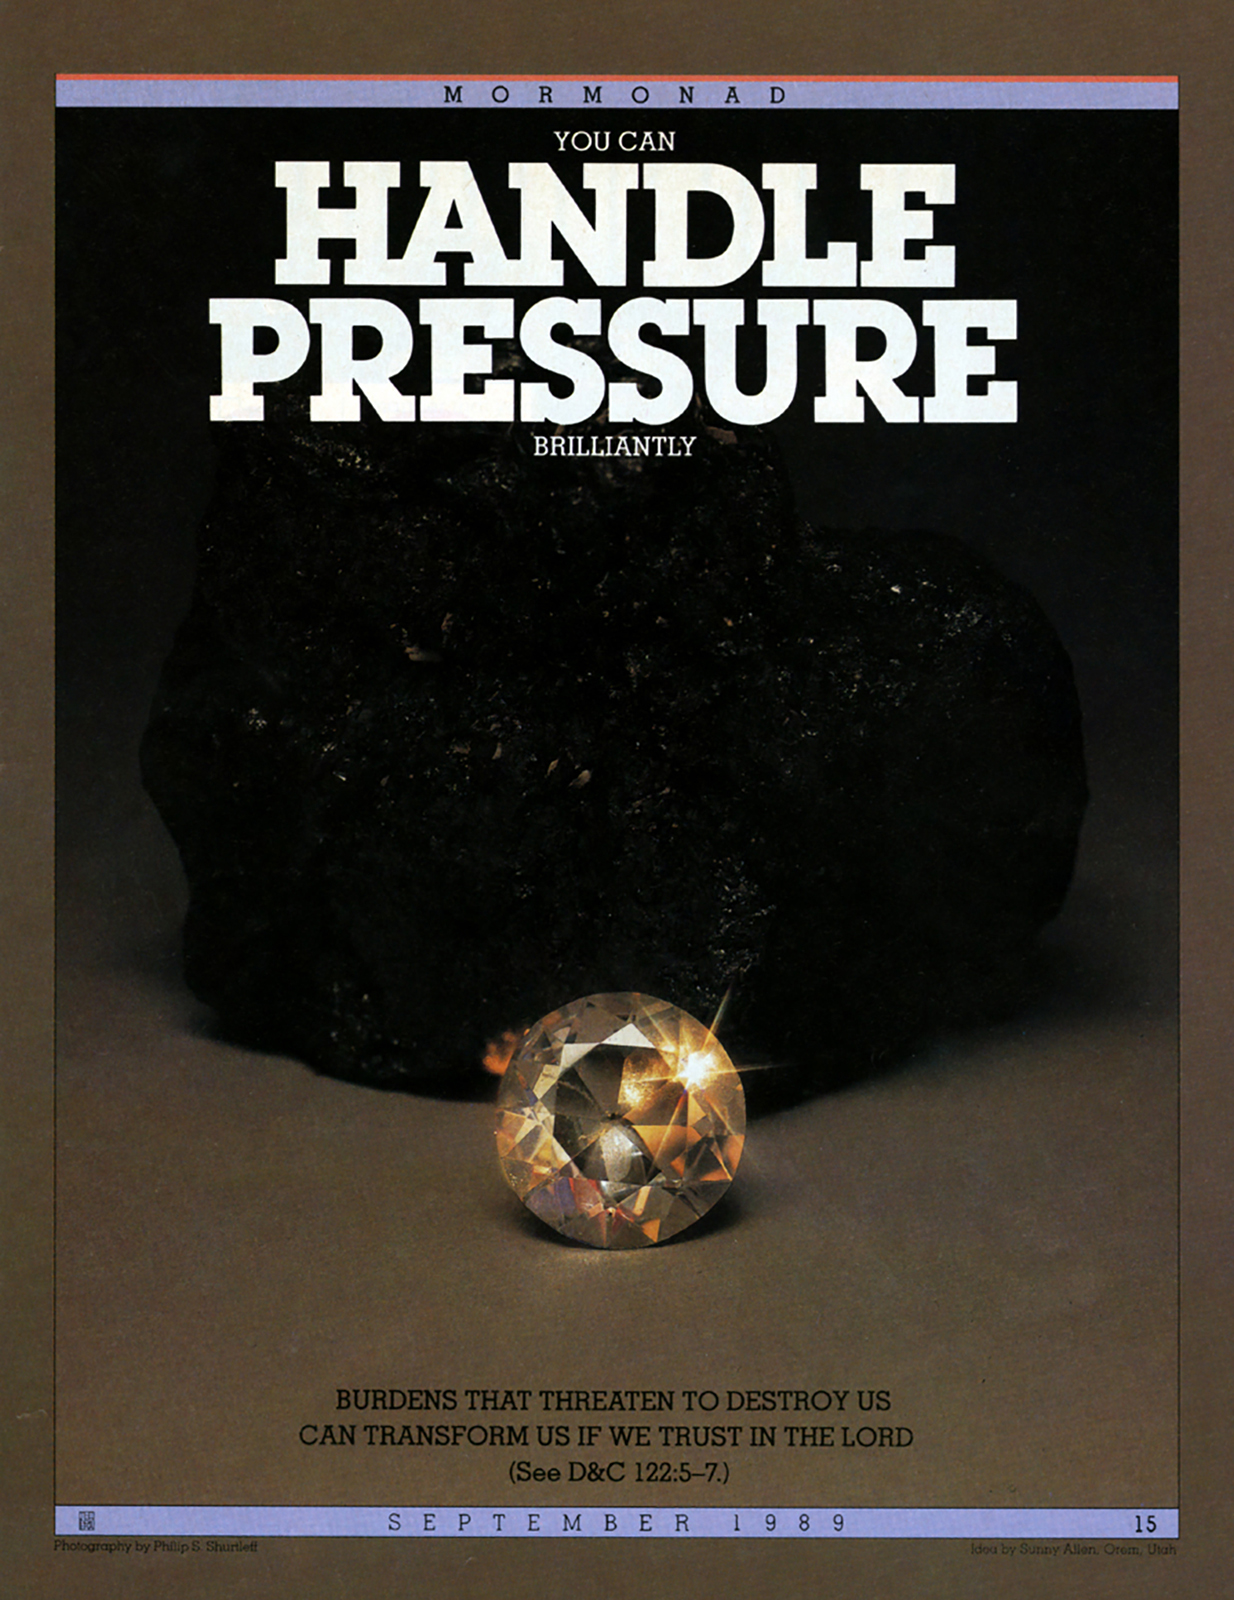 you can handle pressure brilliantly